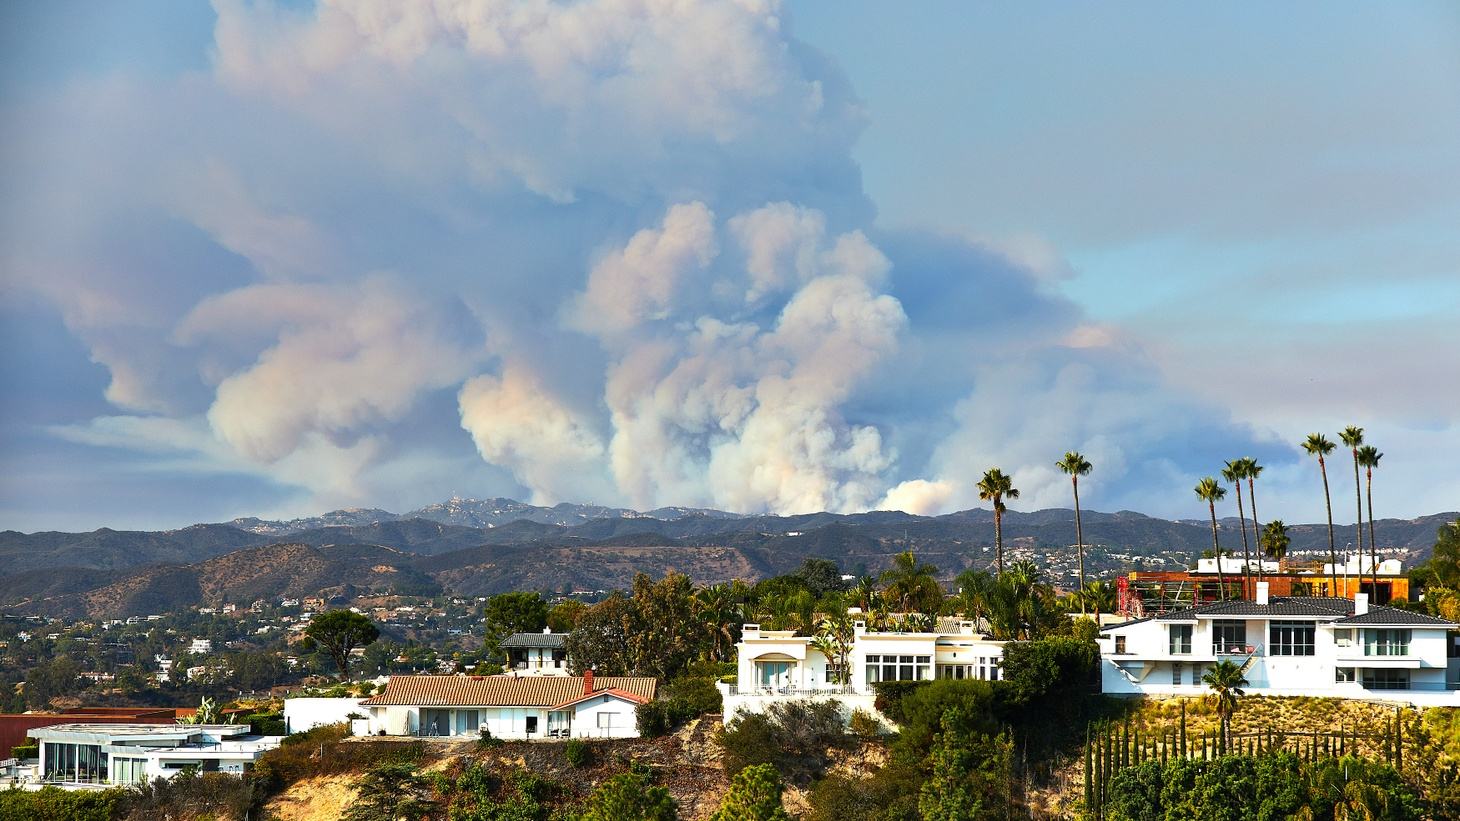 The Woolsey Fire is seen from Hollywood Hills. The fire ignited in November 2018 and burned nearly 100,000 acres of land, according to the National Park Service.